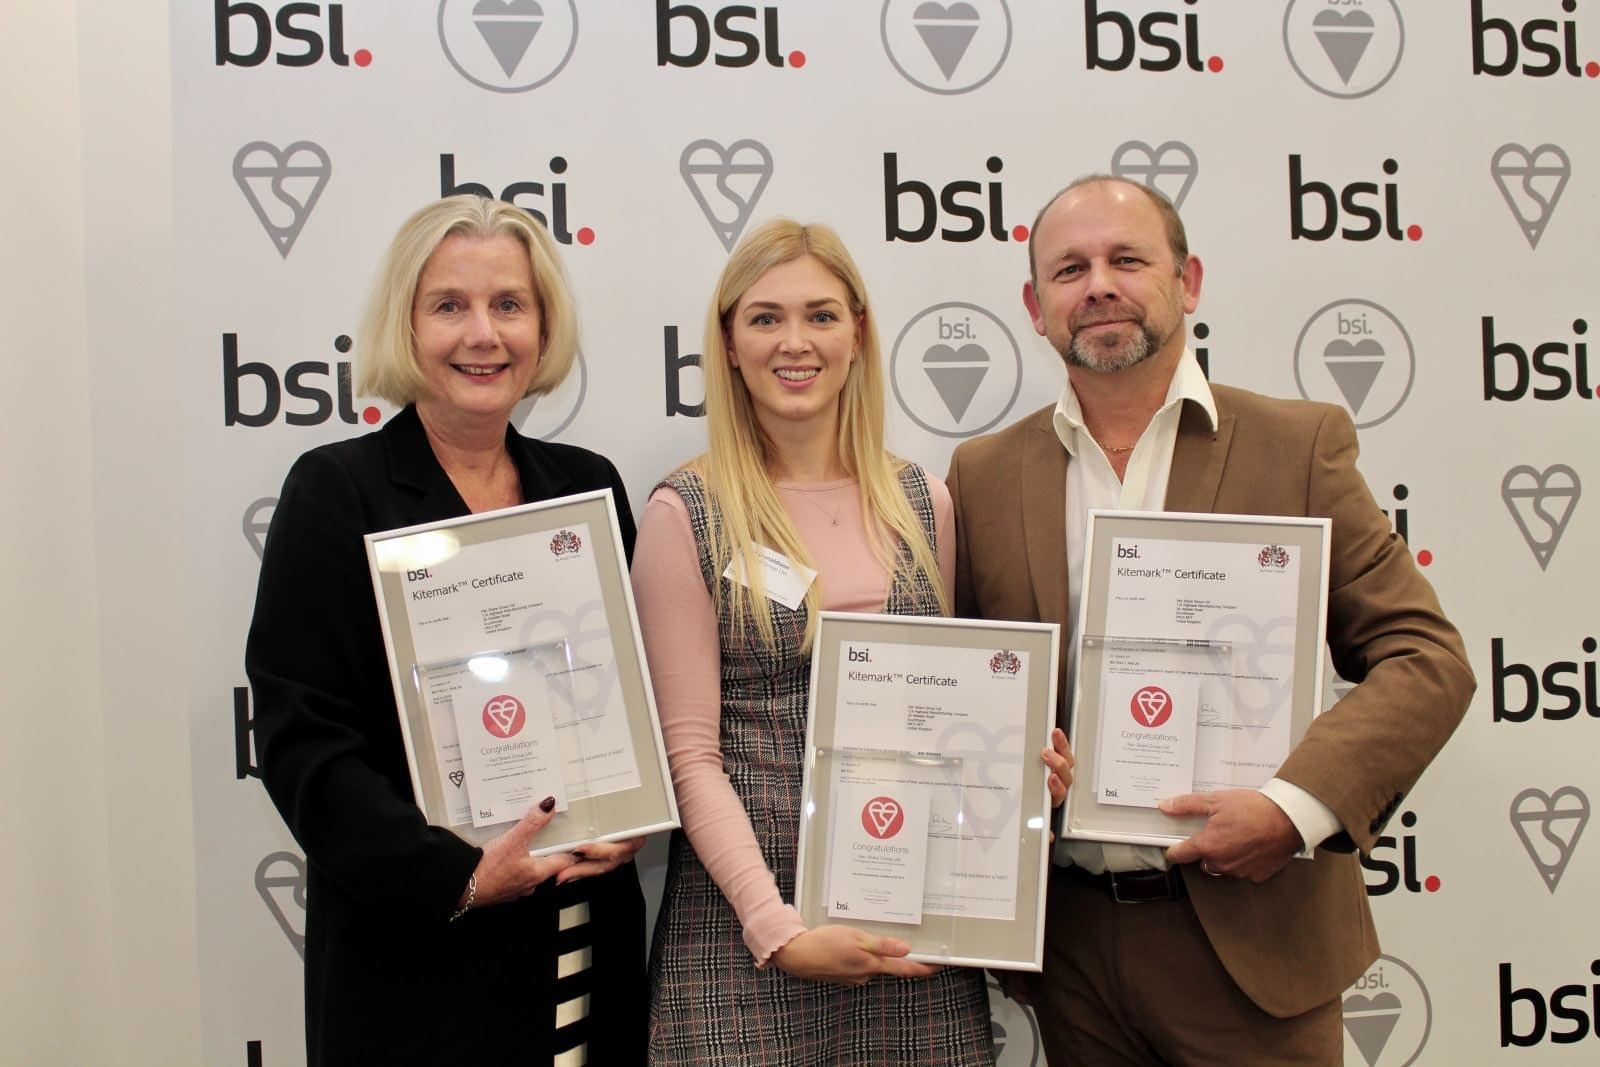 Holly and Neil Donaldson receiving the BSI certificates for the company. About Highseal Manufacturing: Highseal is accredited in three BSI certificates and CE marking to ensure their products are reliable and quality controlled.